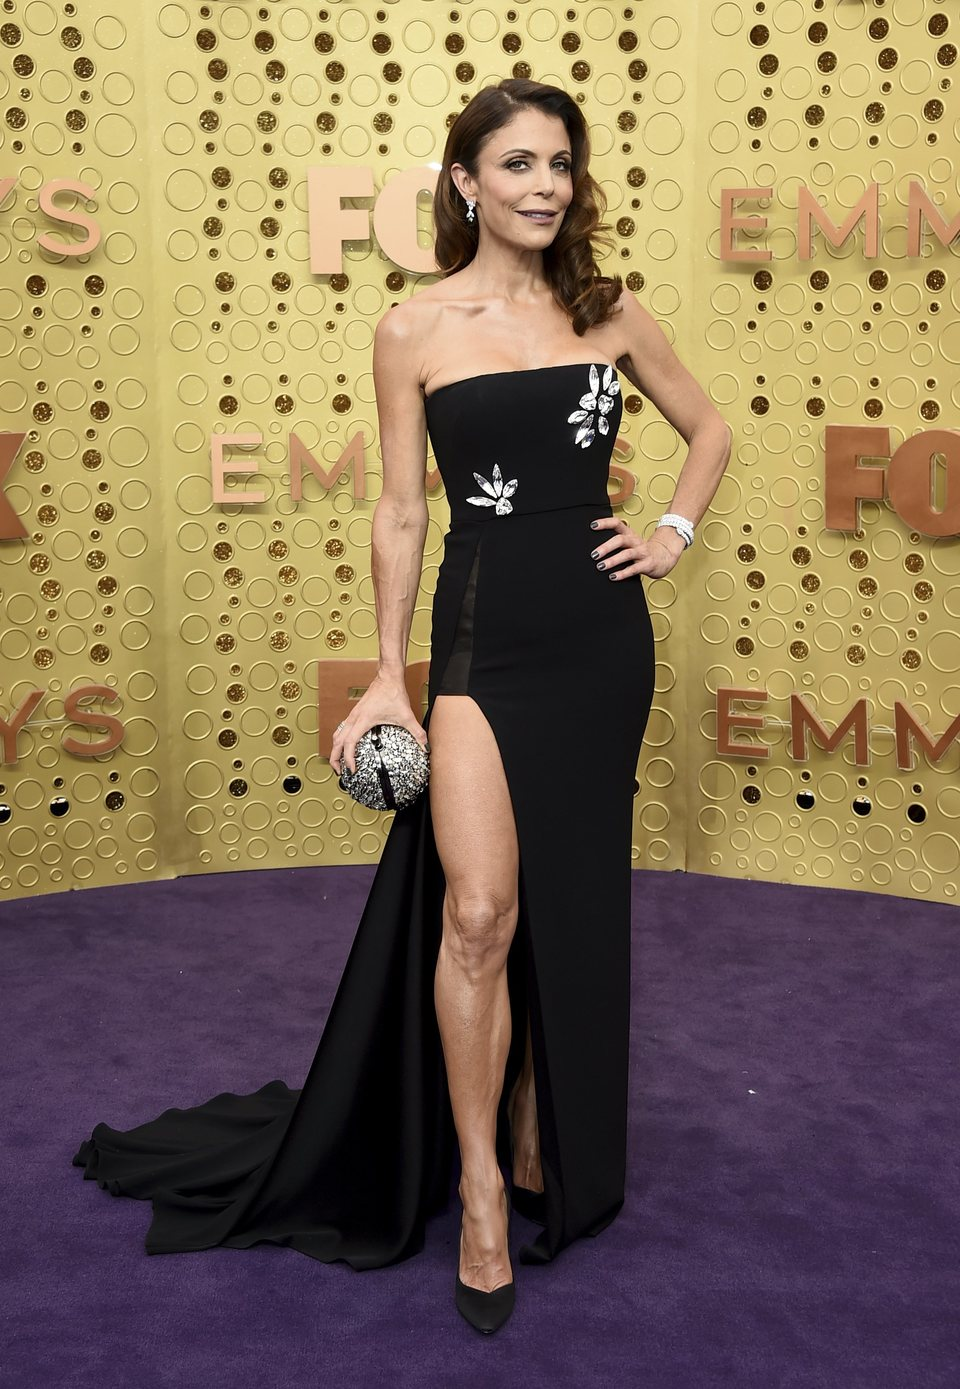 Bethenny Frankel at the Emmy 2019 red carpet